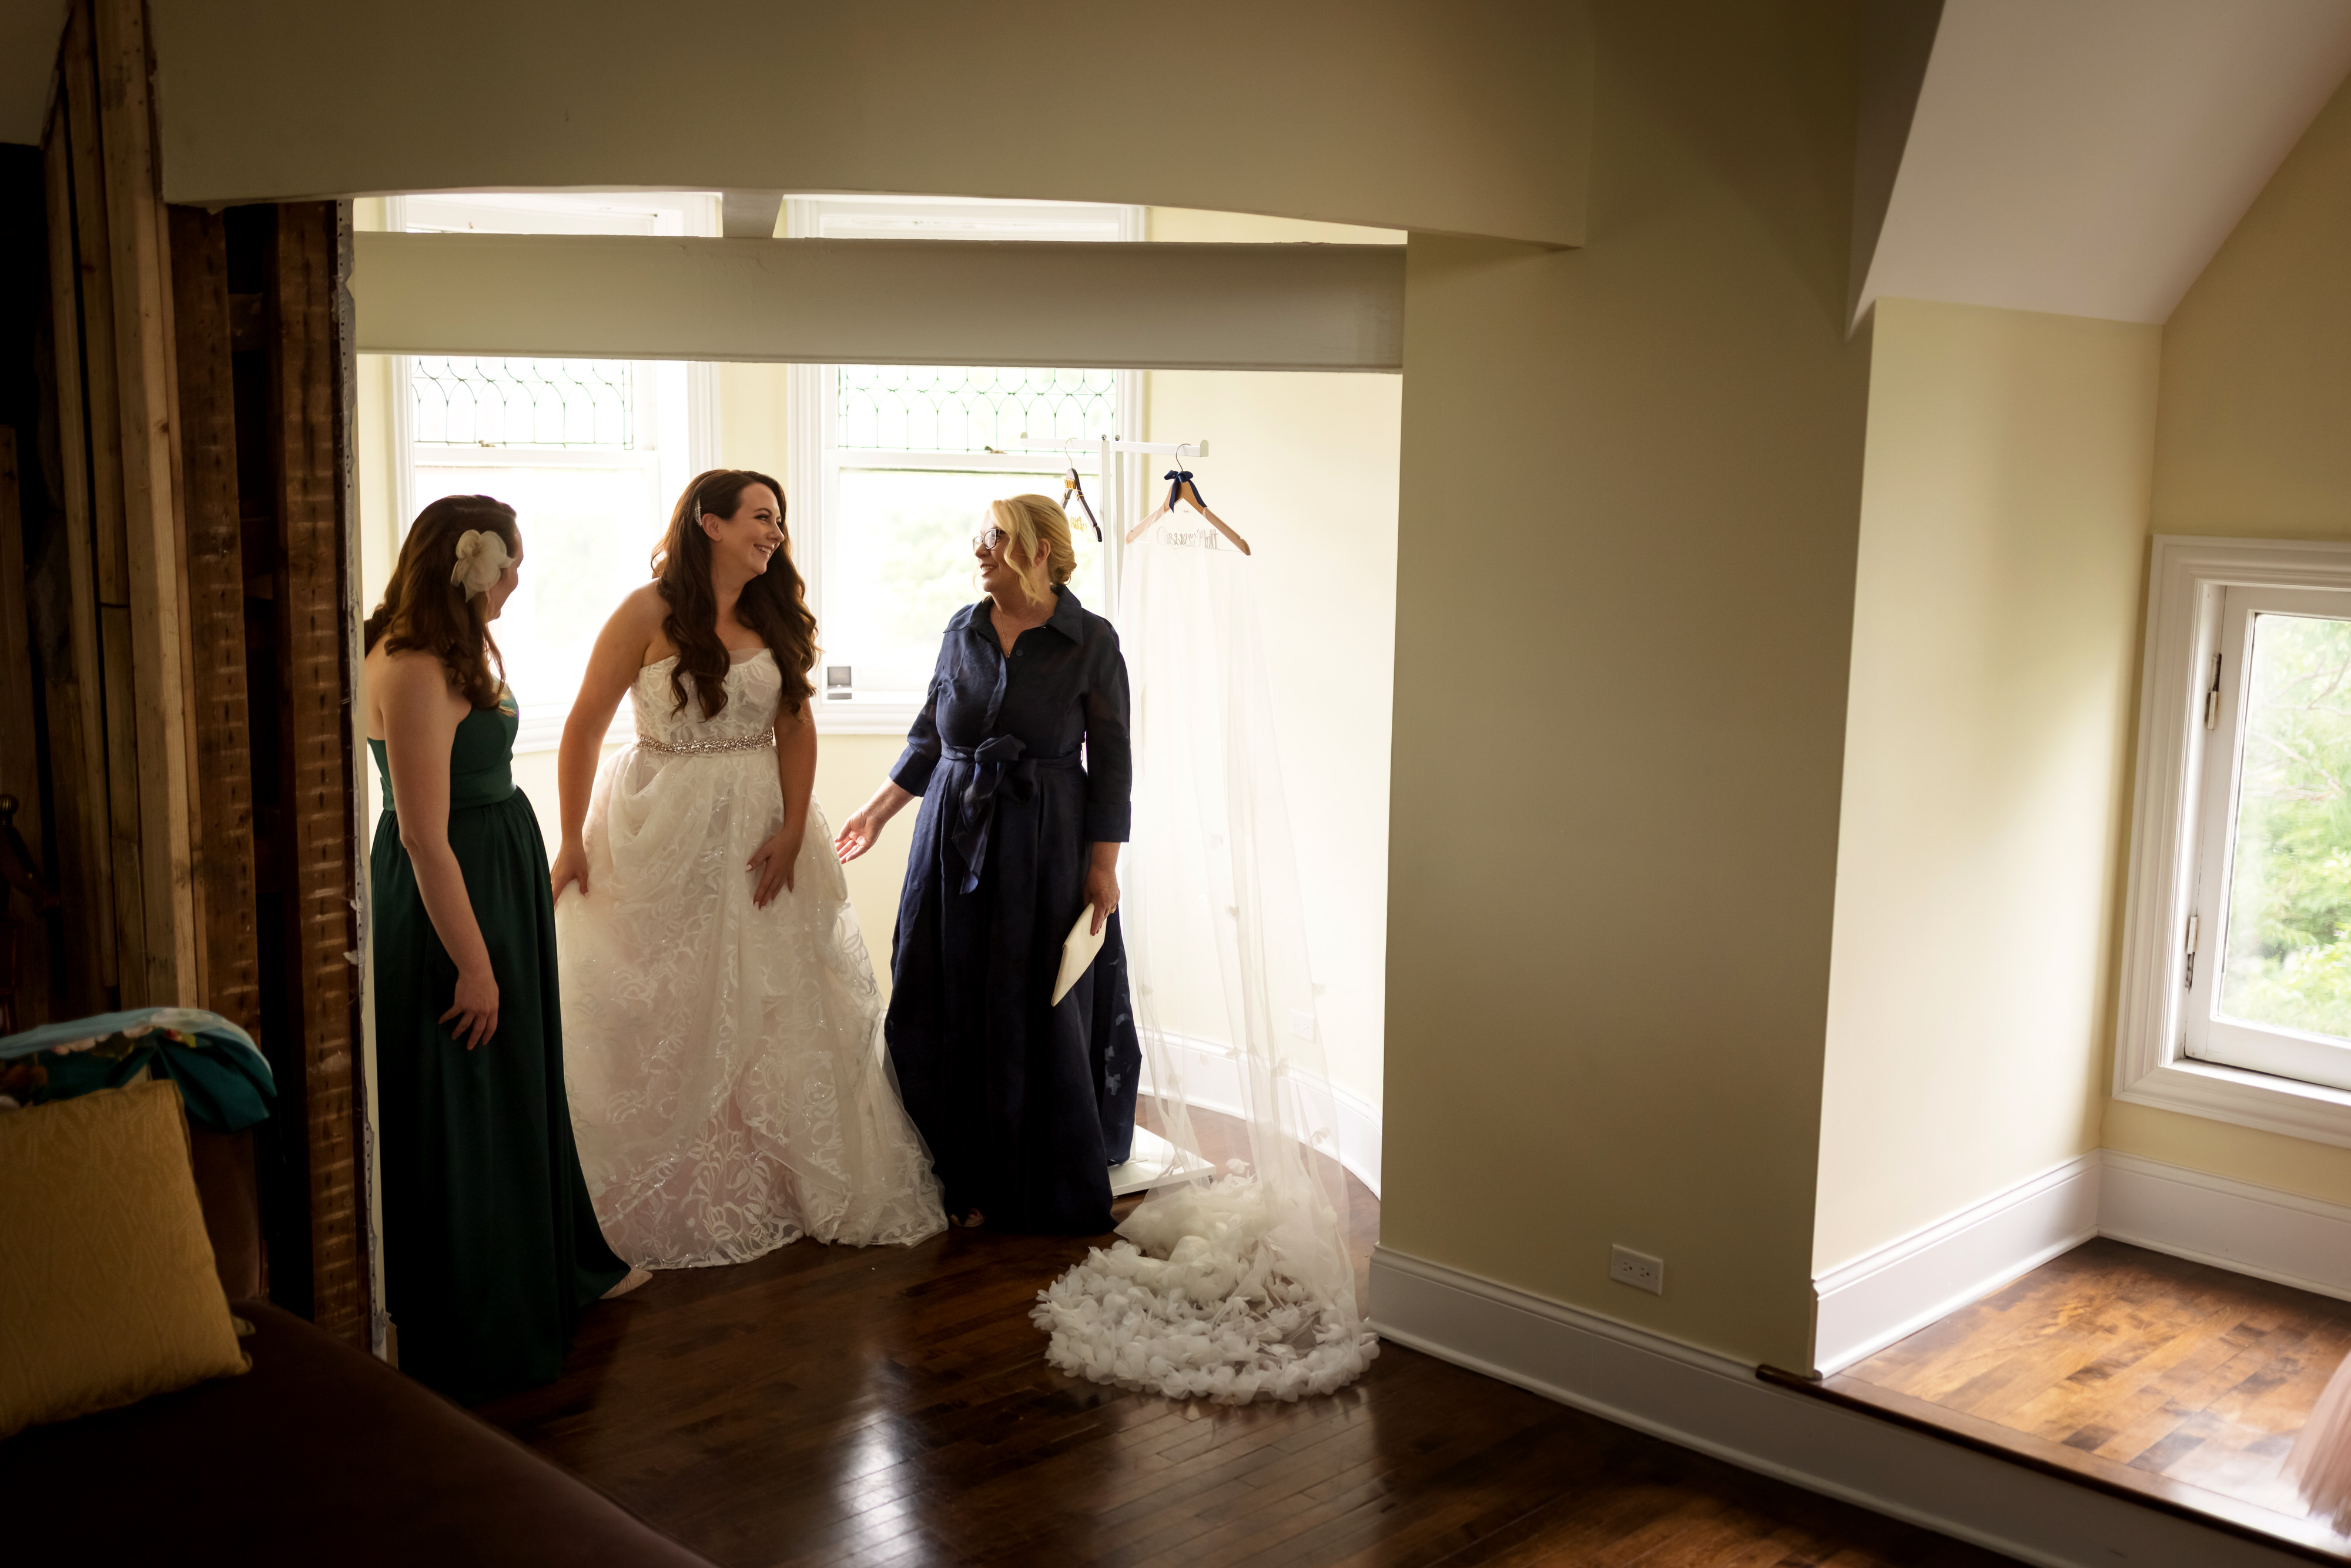 mom and sister help bride get ready in her wedding dress